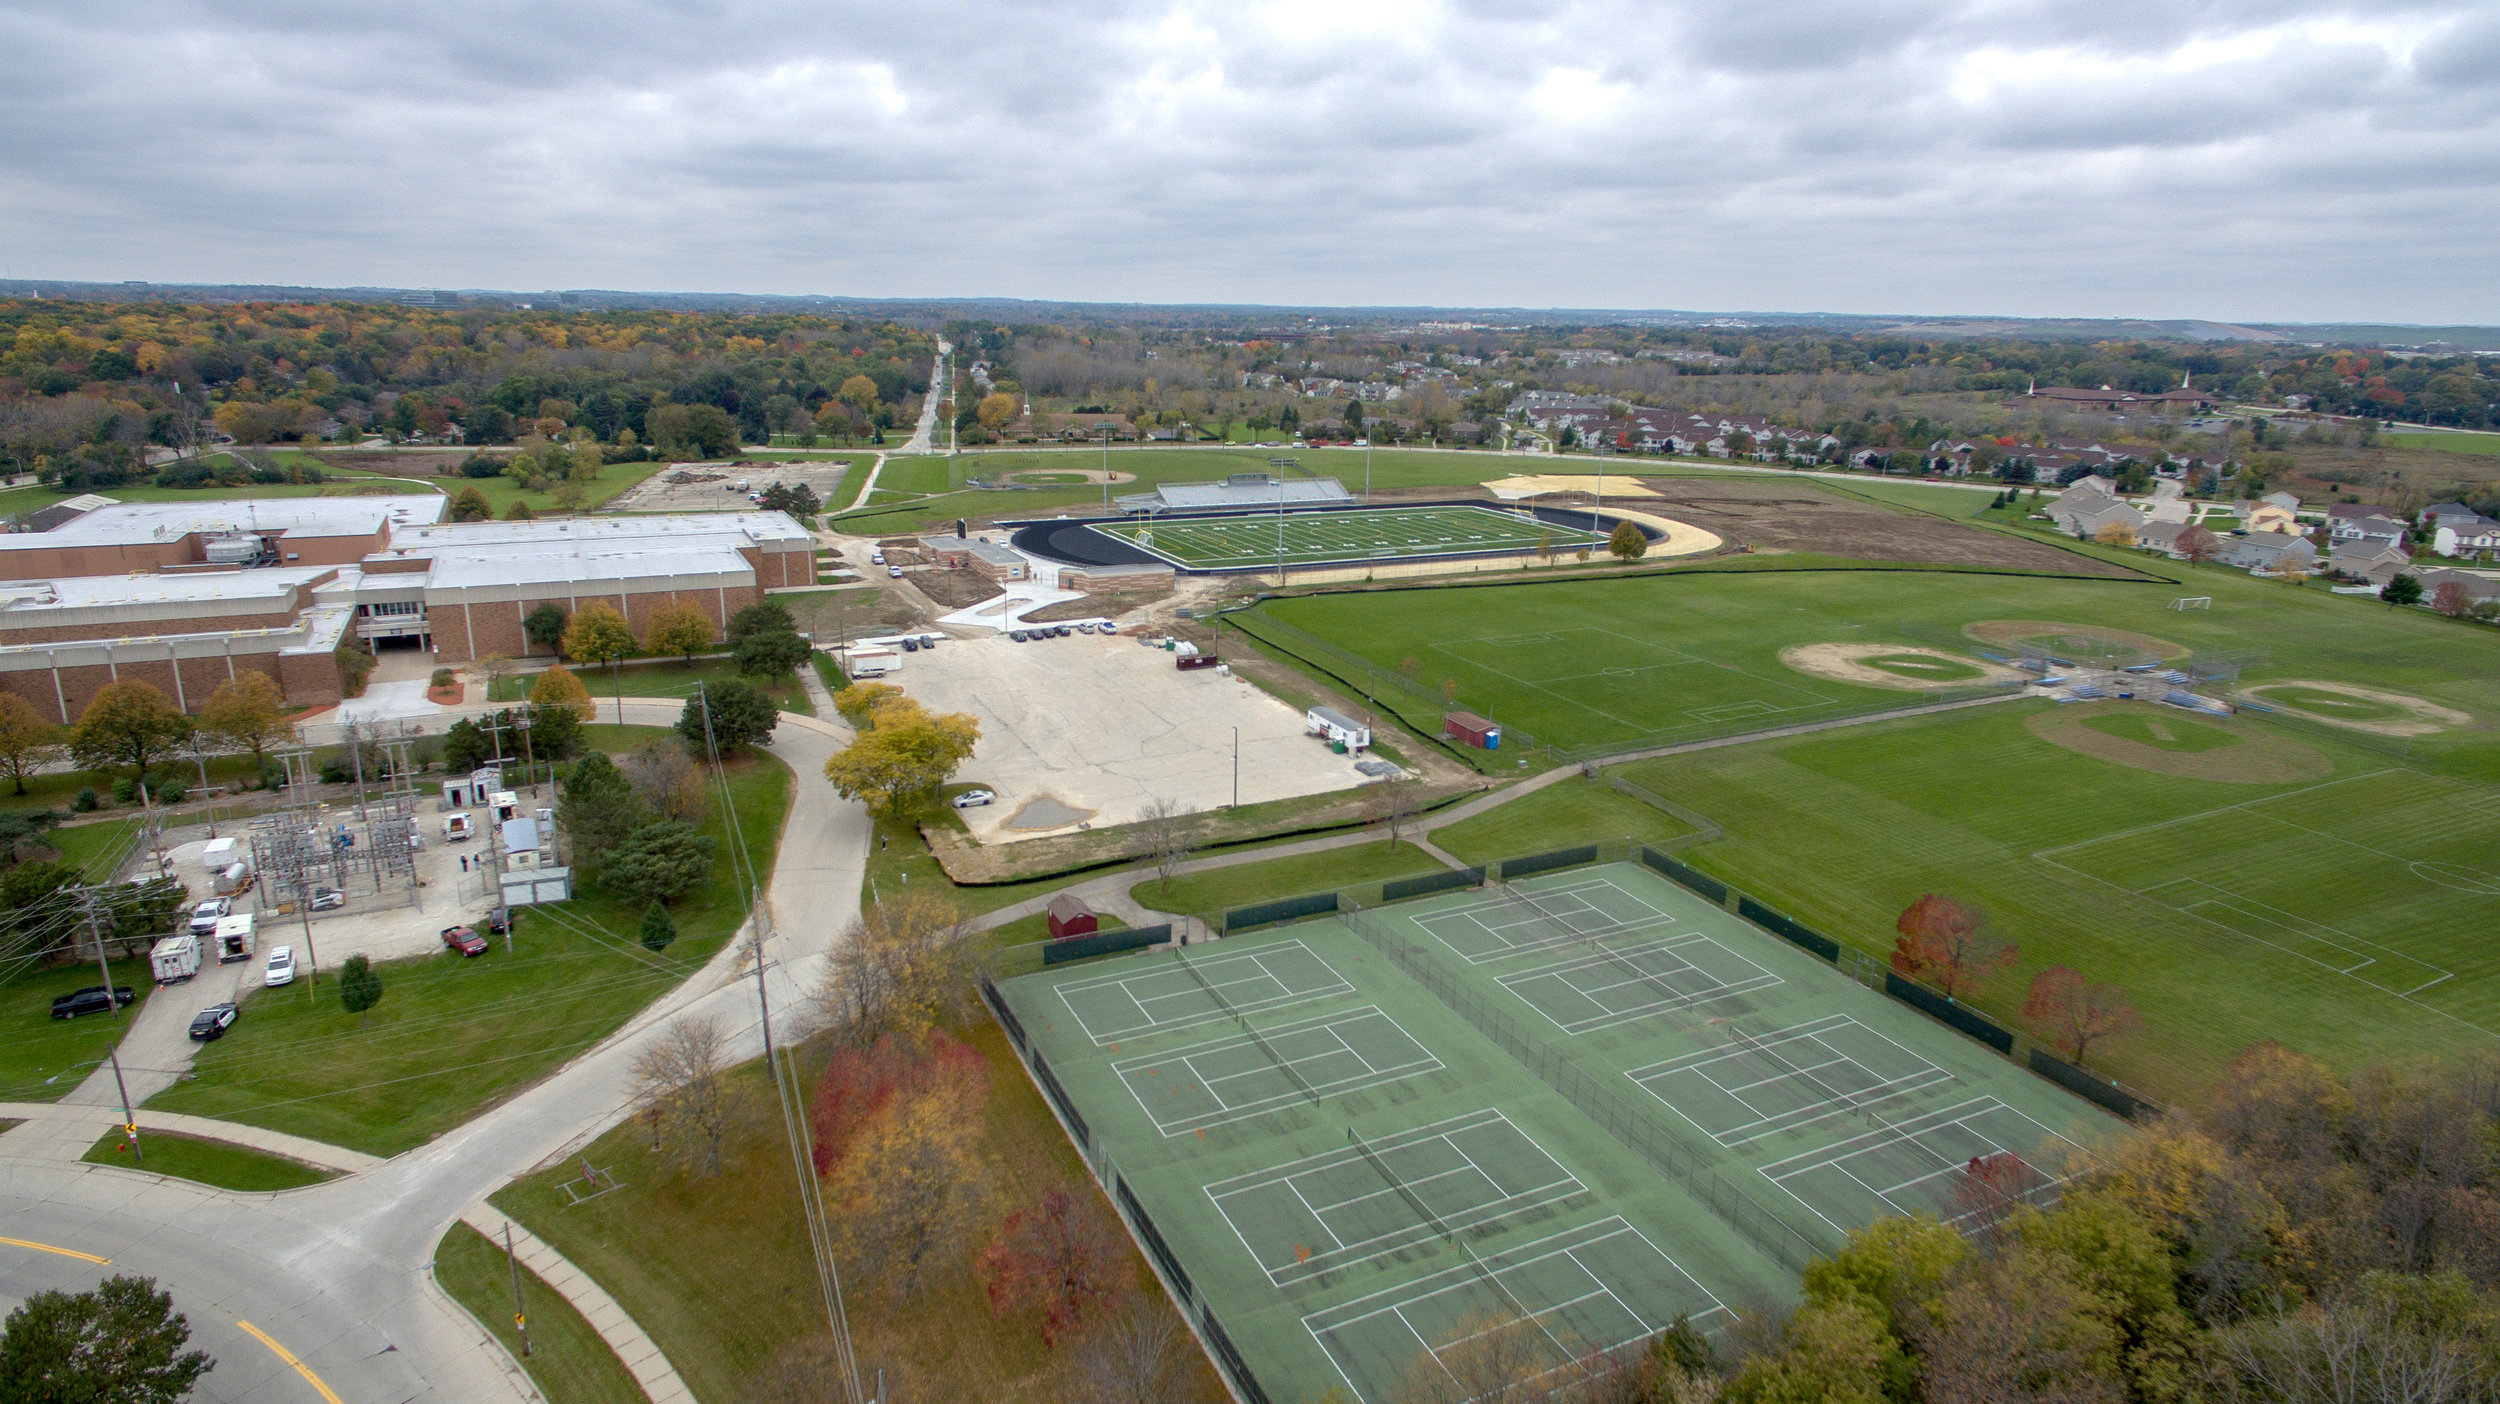 Aerial view of the Vincent High School campus in 2018. Reflo drone photo by Michael Snowden